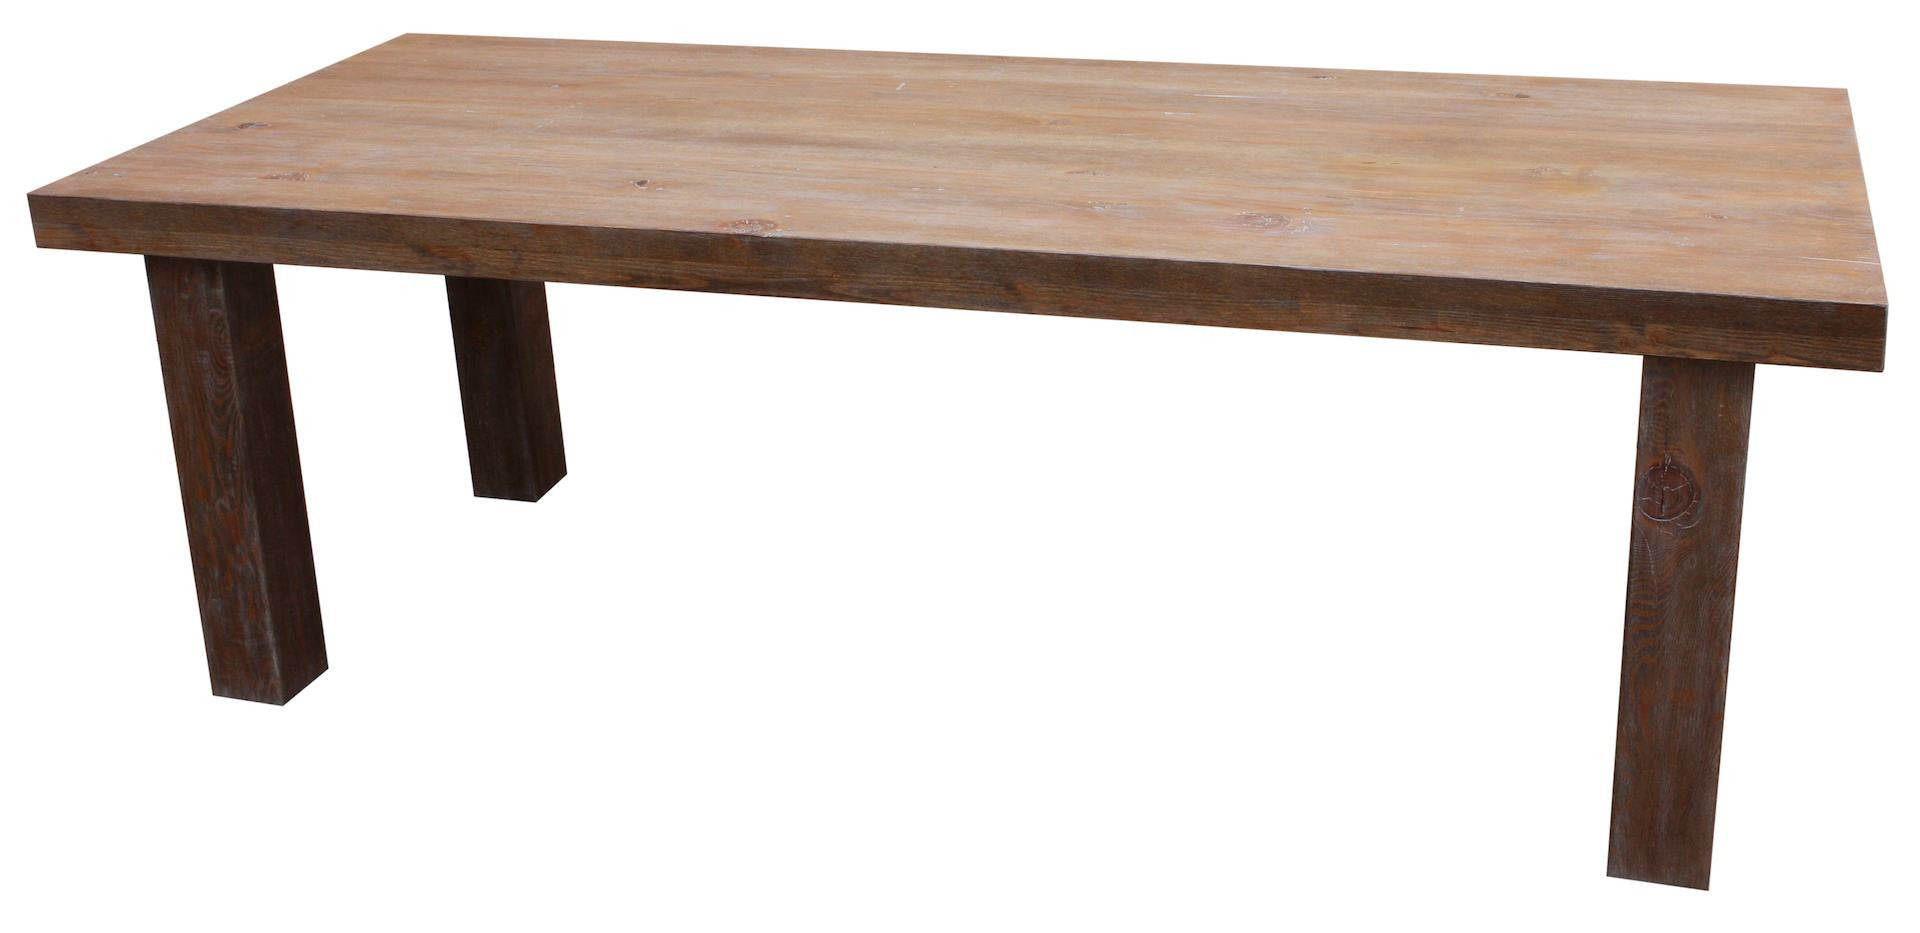 Loft Dining Table in Reclaimed Wood. Dining Tables   Mortise   Tenon